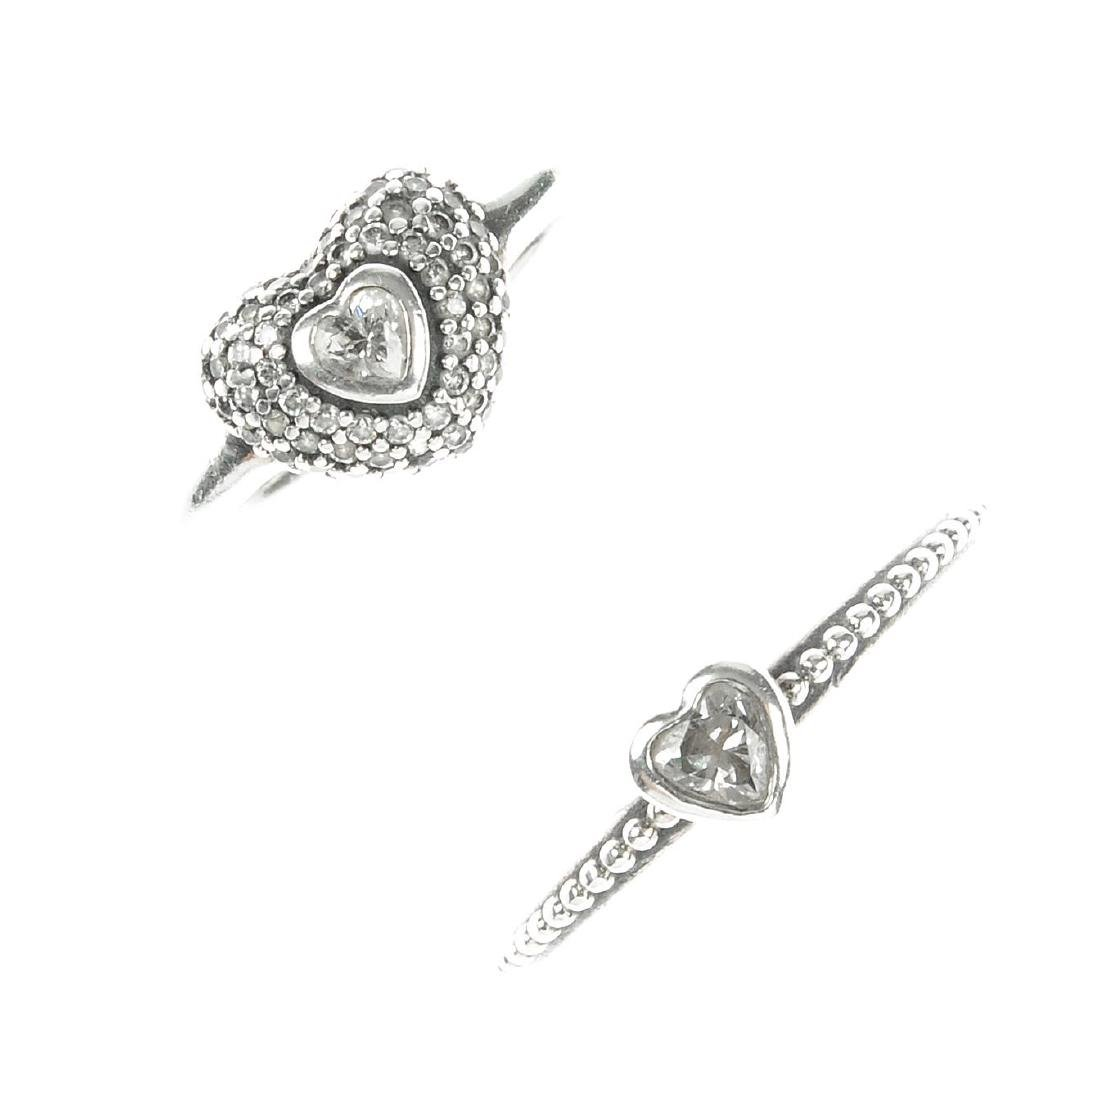 PANDORA - a selection of rings and charms. To include a